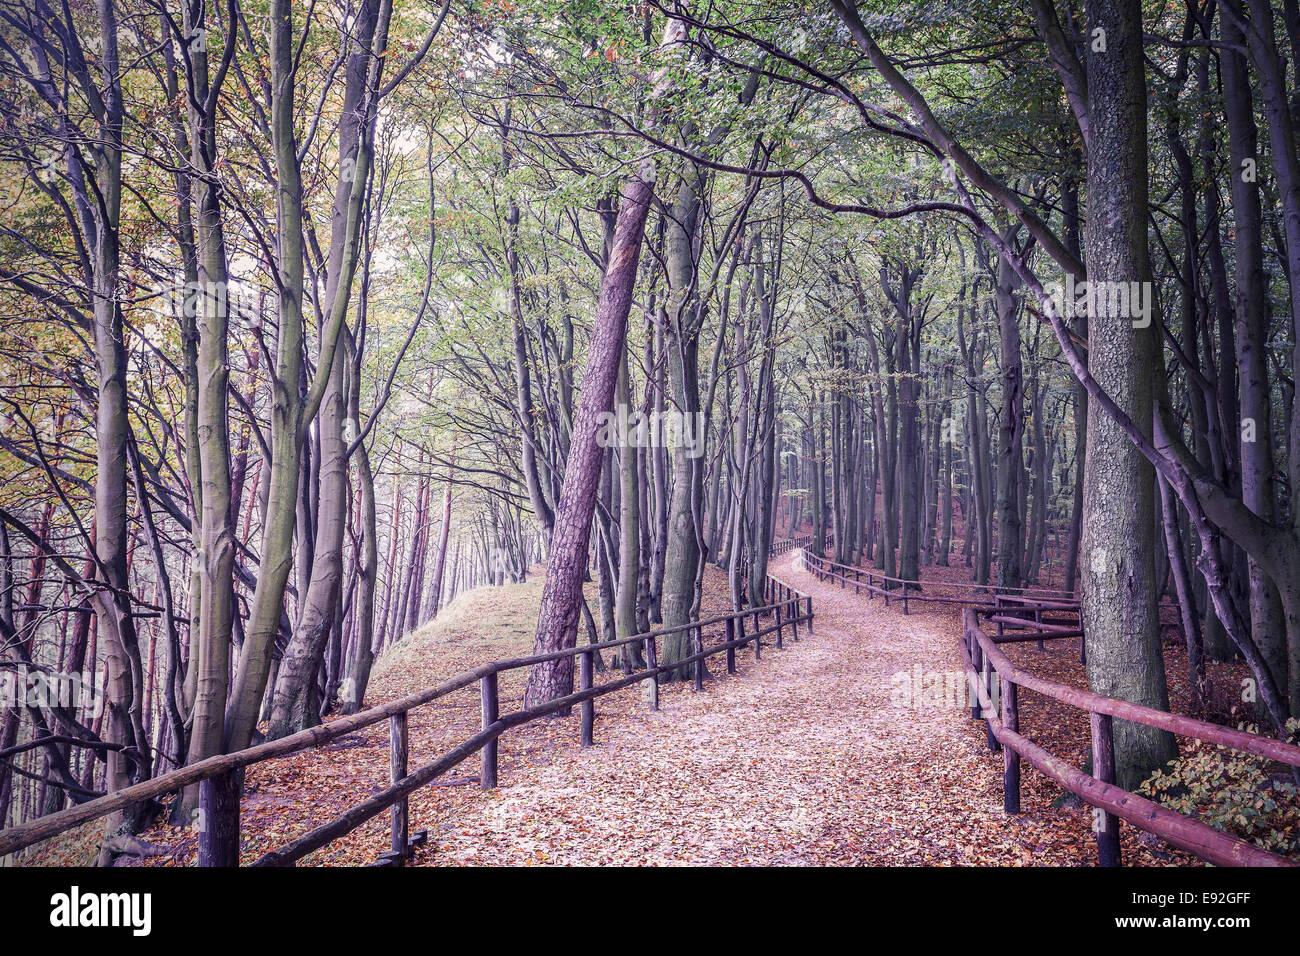 Retro filtered picture of a forest. - Stock Image